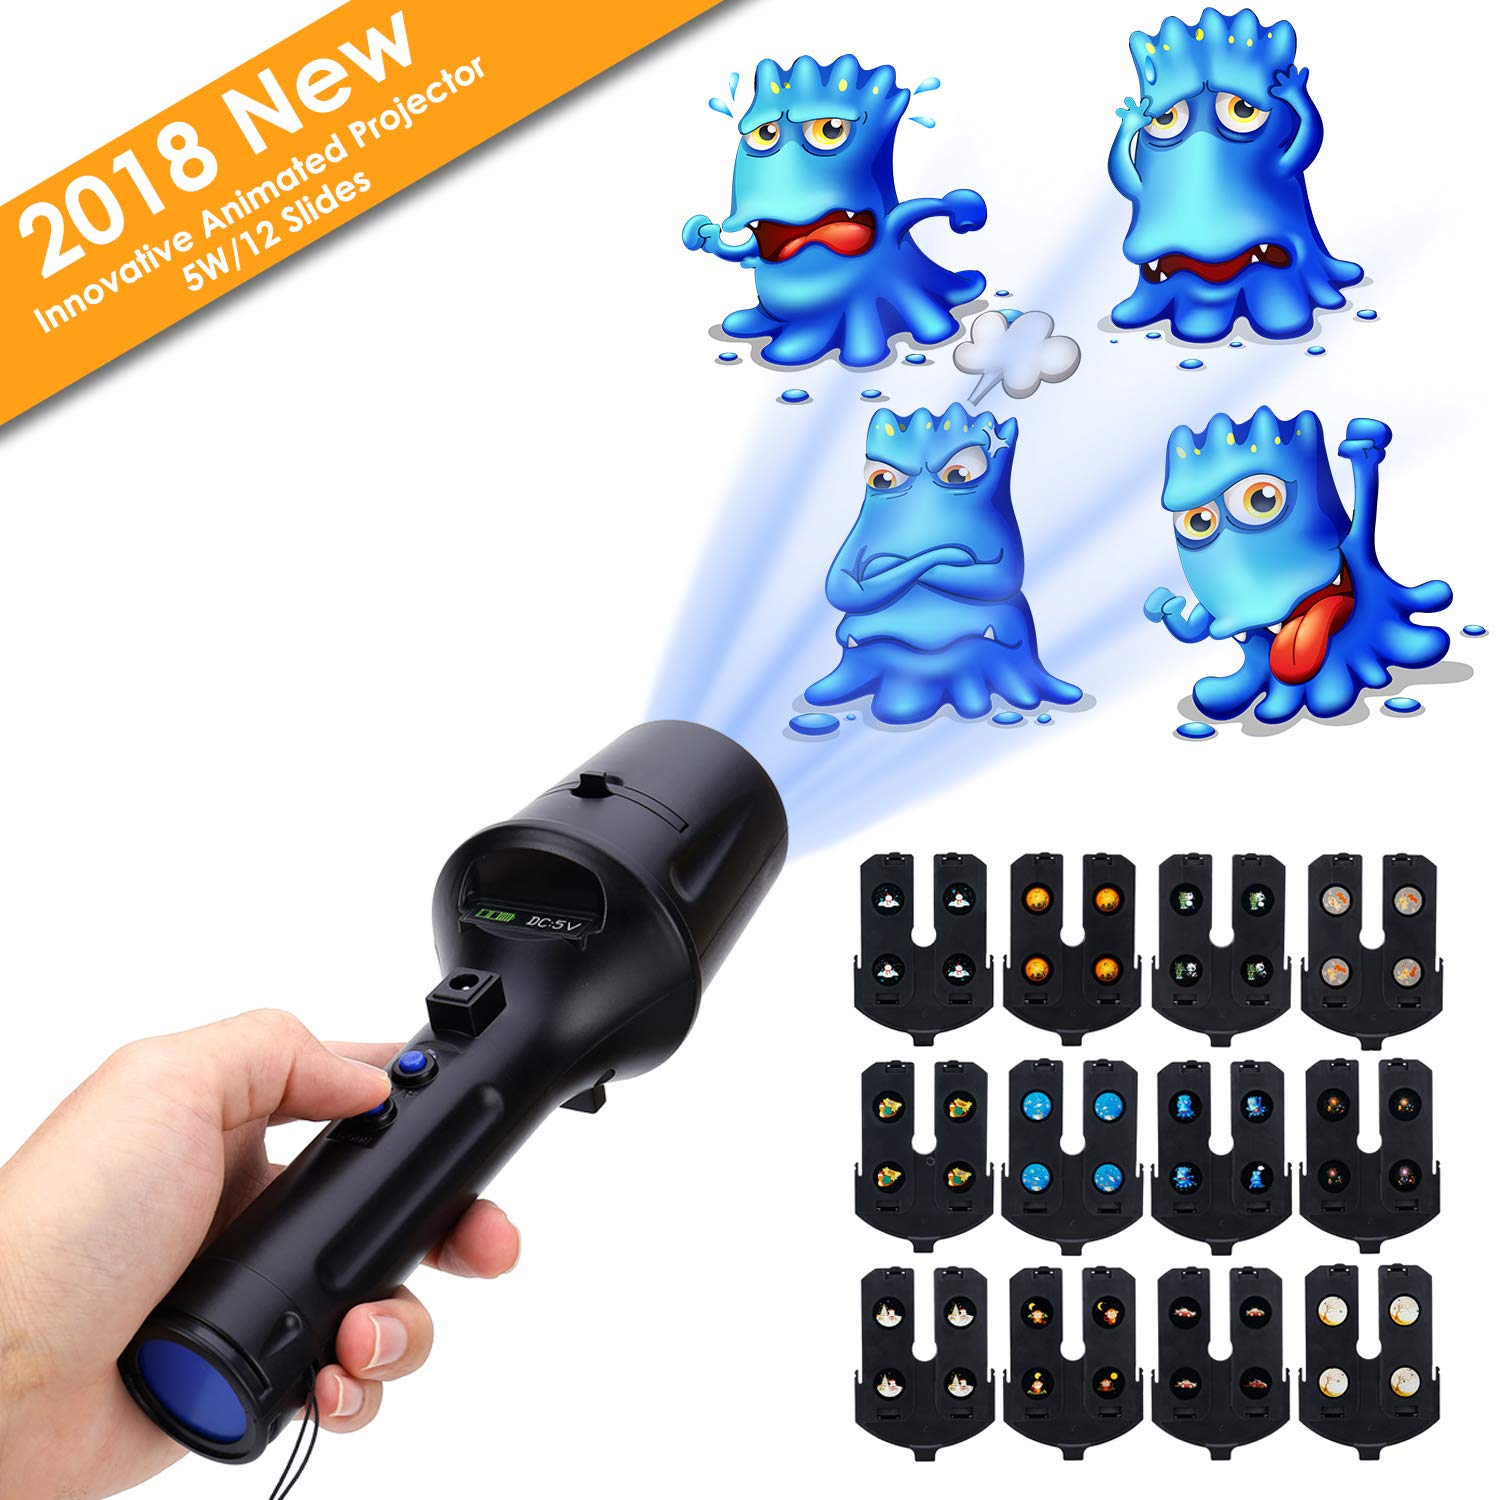 LED Projector Flashlight, LUXONIC Portable Handheld Flashlight and Projector Light 2 in 1 Decoration Projector Lamp Battery Operated with 12 Animated Pattern Slides and Tripod Holiday Projection Lamp